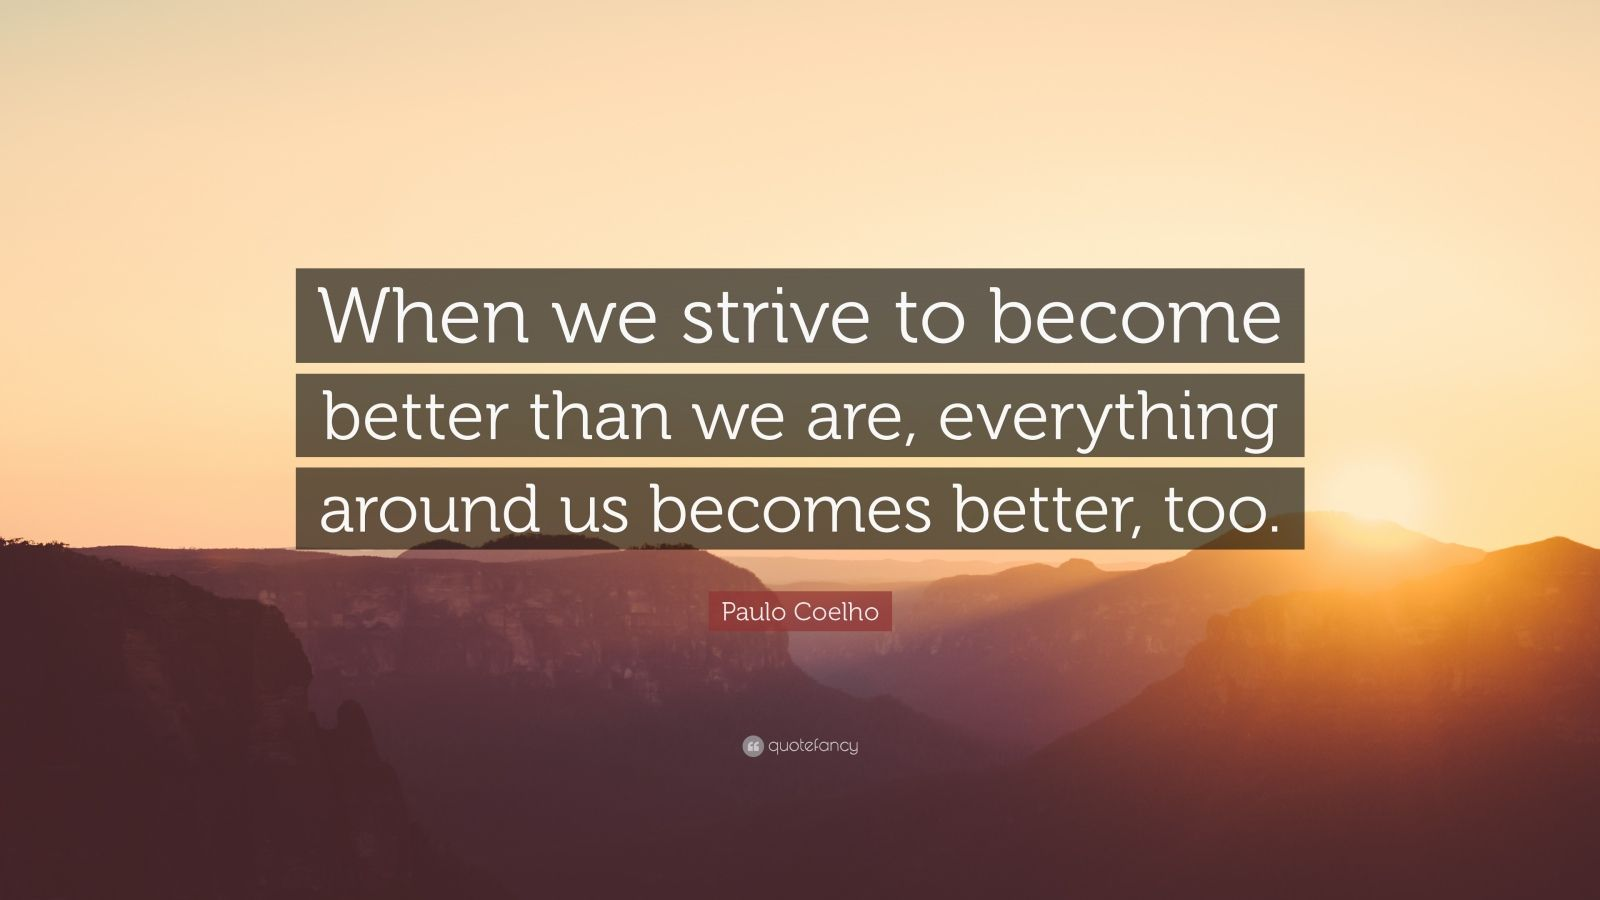 Brian Tracy Quotes Wallpaper Paulo Coelho Quote When We Strive To Become Better Than